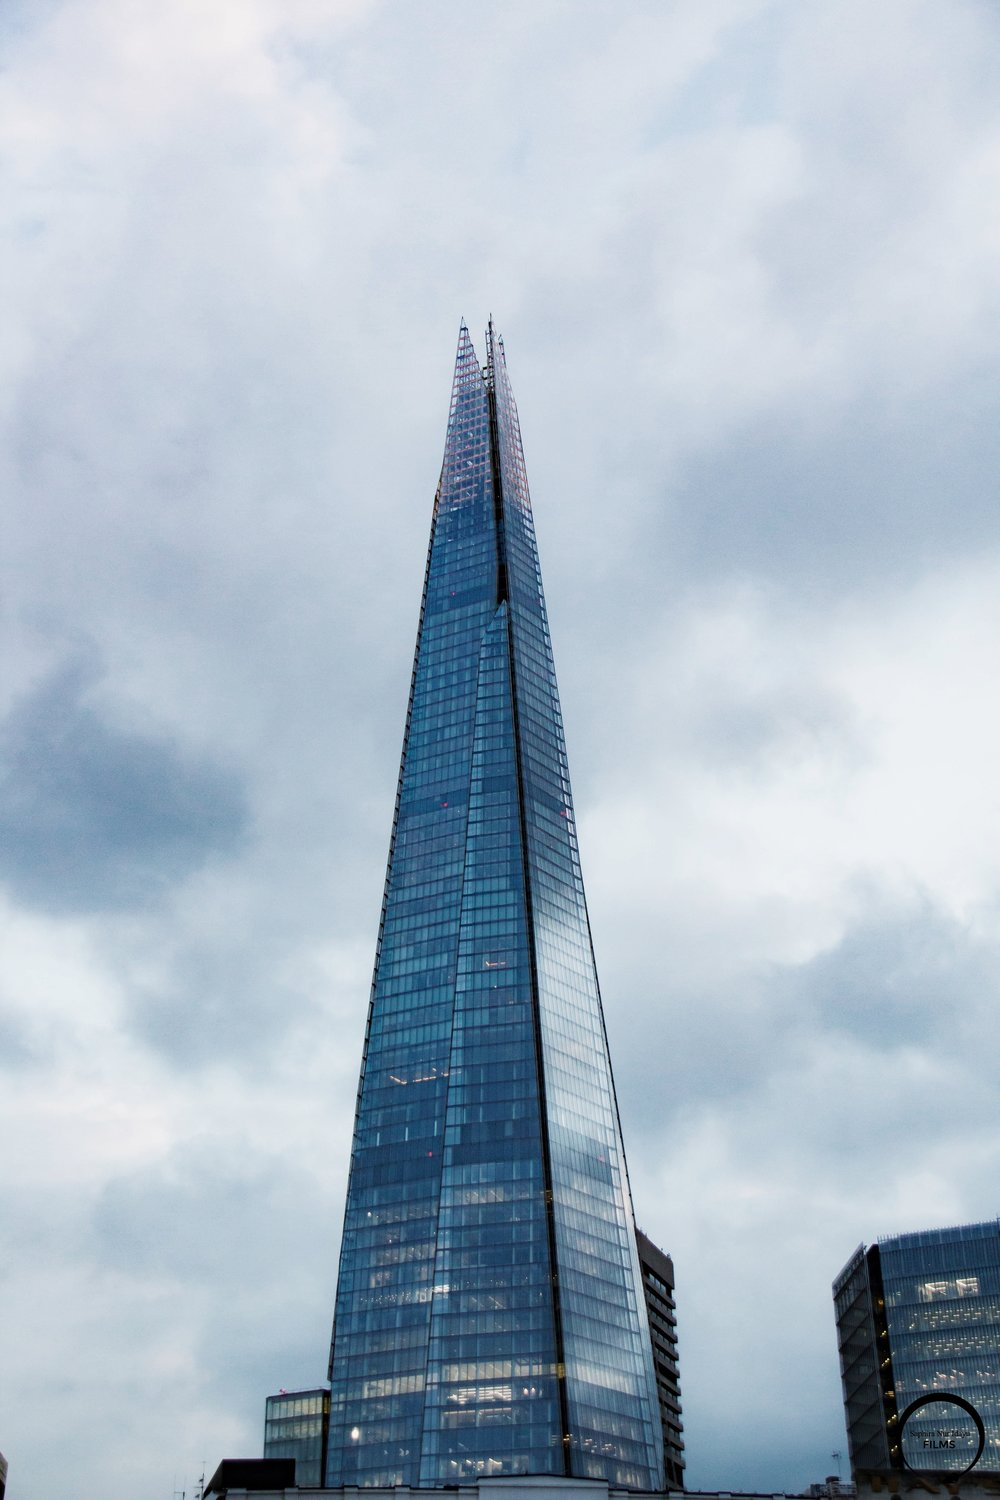 This is the Shard! Coolest building ever.